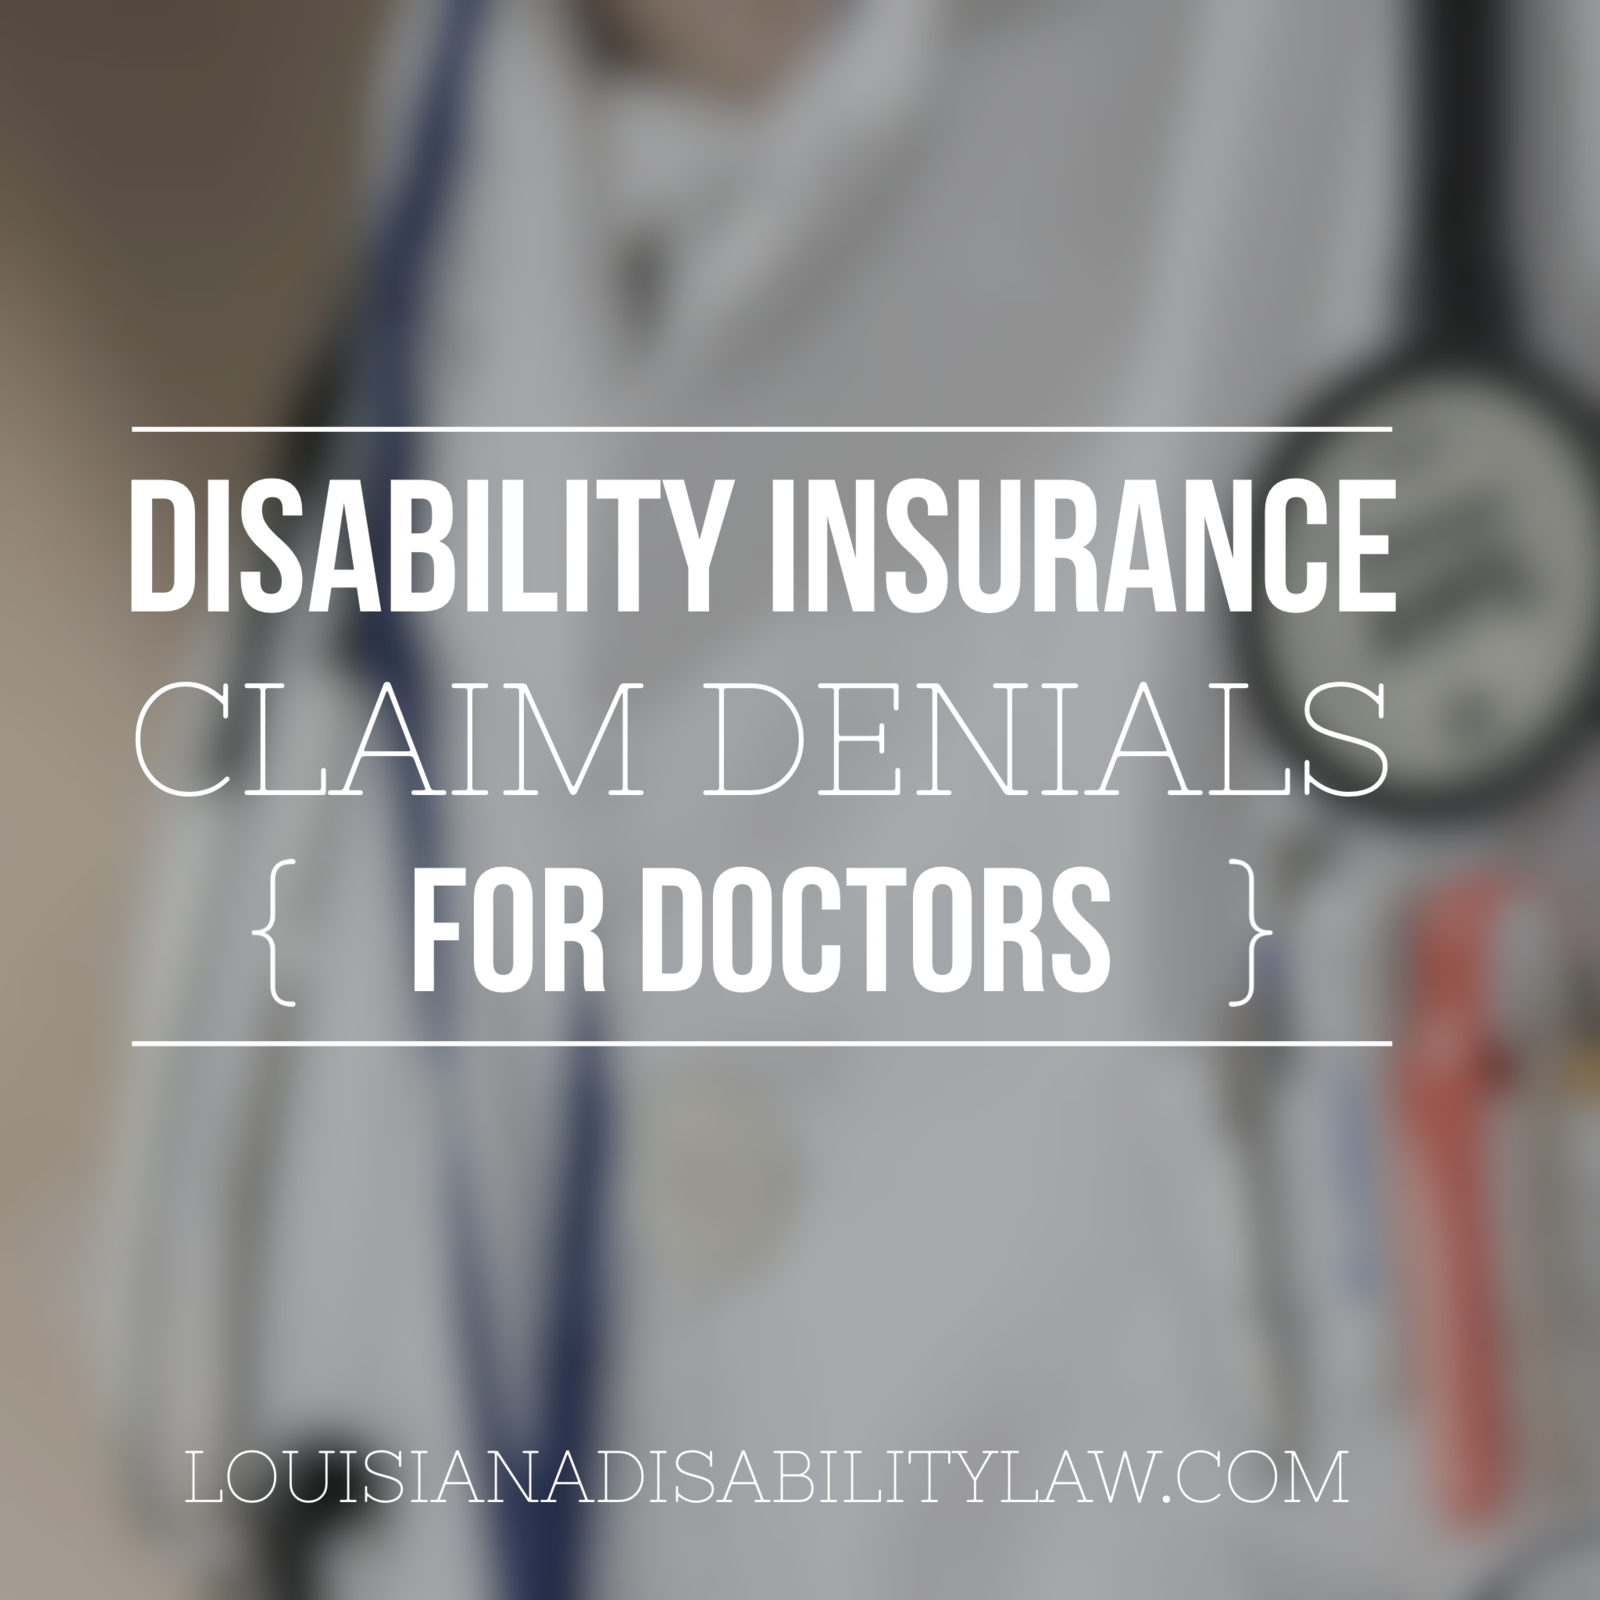 Disability Insurance Claim Denials for Doctors